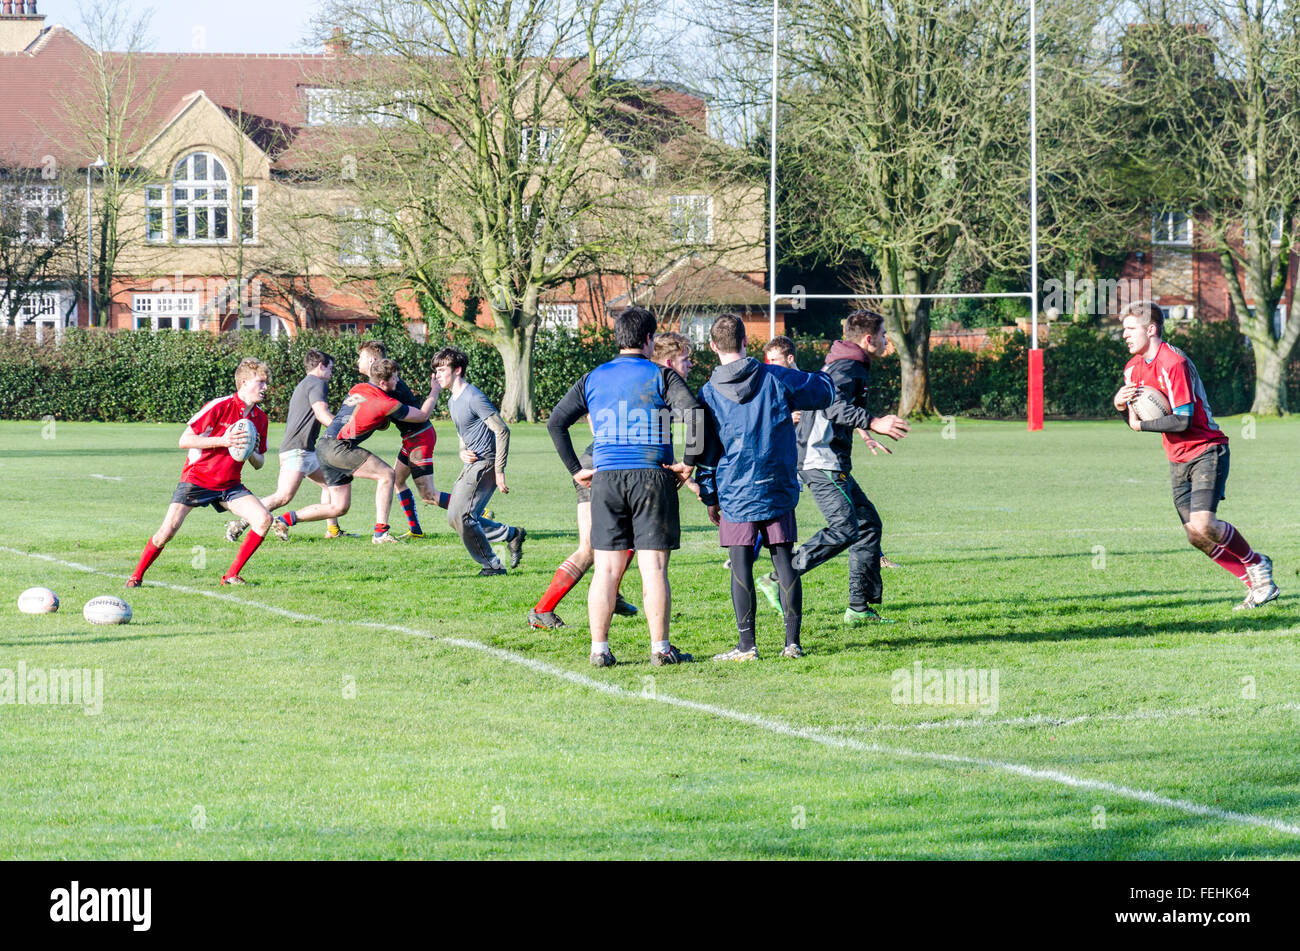 Rugby practice on St Legend's Park, Cambridge, UK - Stock Image